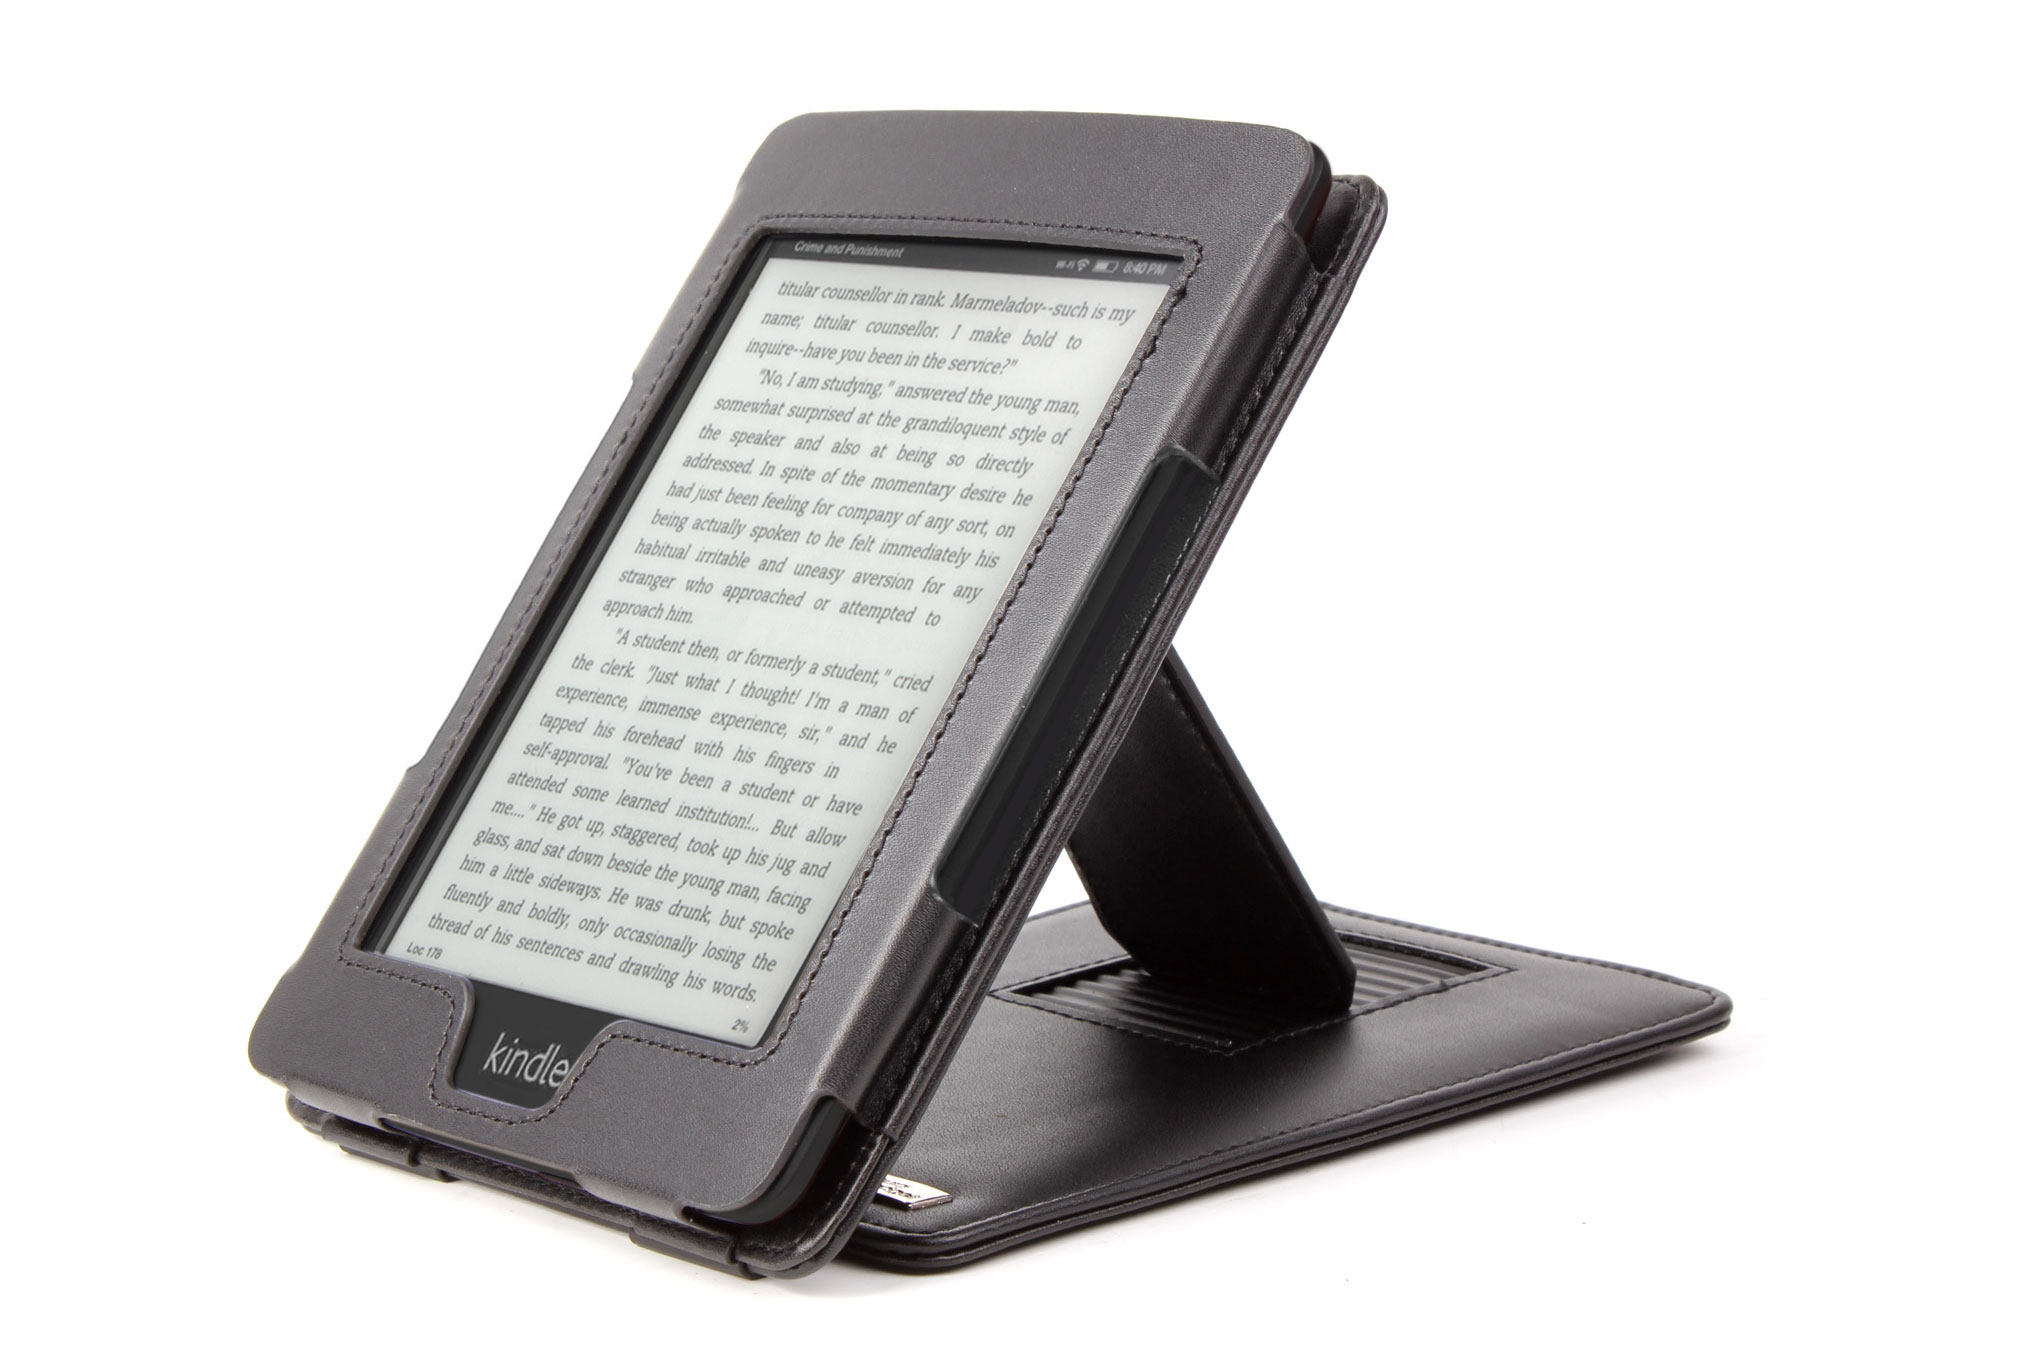 Custom Designed Amazon Kindle Paperwhite Case With Built In Stand In Sleek Black Preview